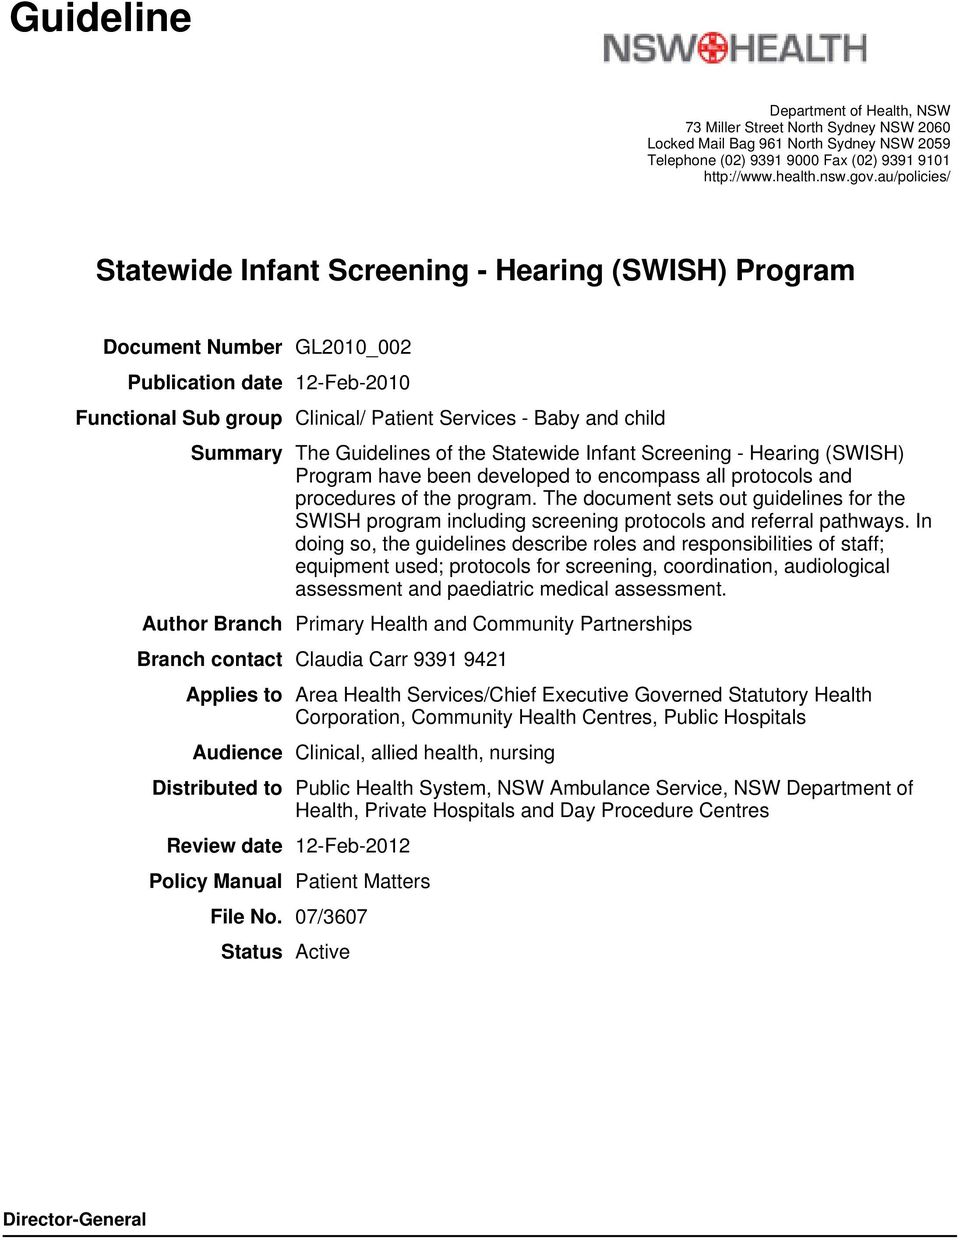 space Summary The Guidelines of the Statewide Infant Screening - Hearing (SWISH) Program have been developed to encompass all protocols and procedures of the program.